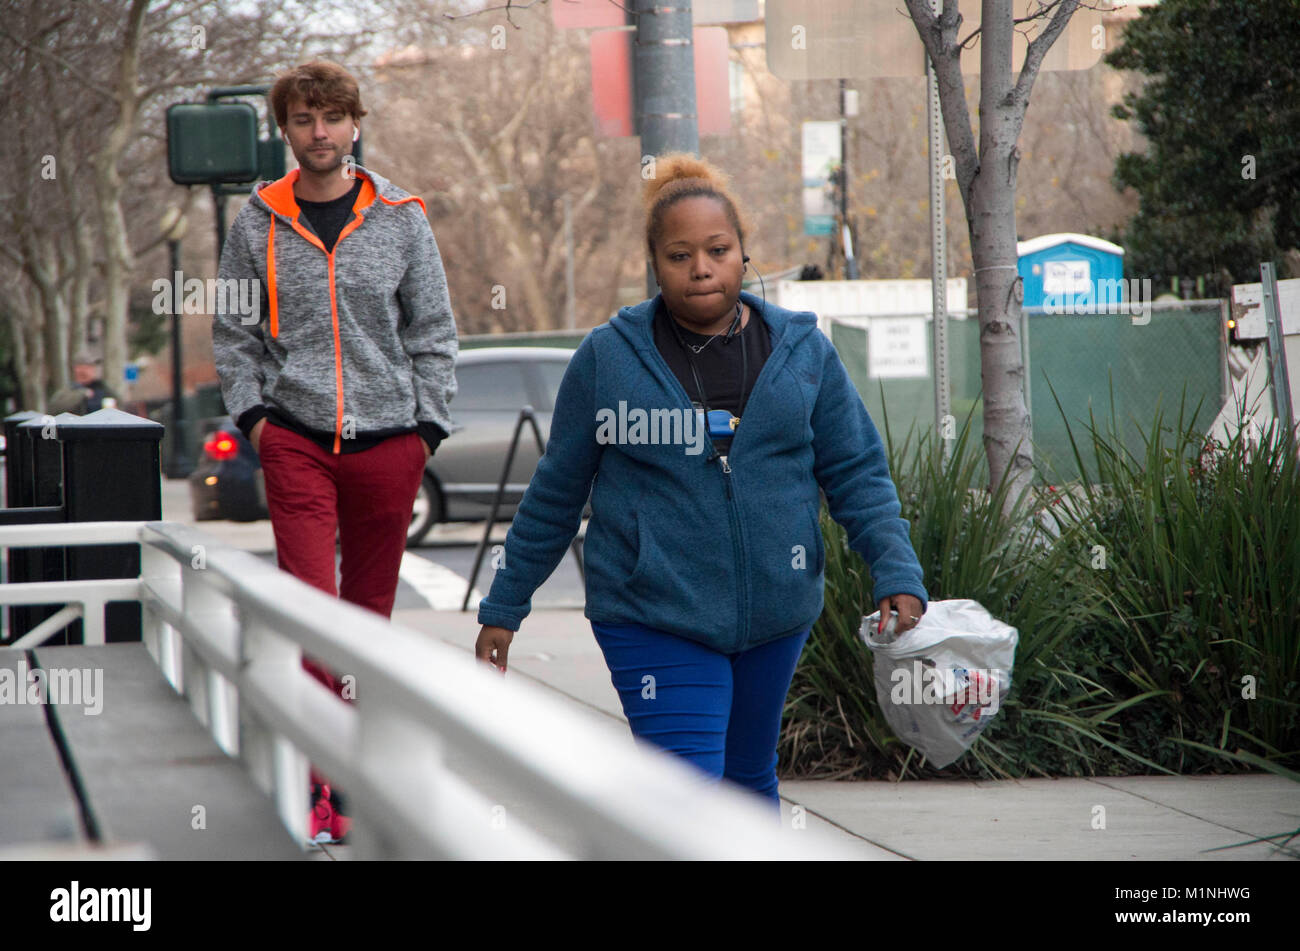 Two people take a walk on 9th Street in Sacramento. - Stock Image